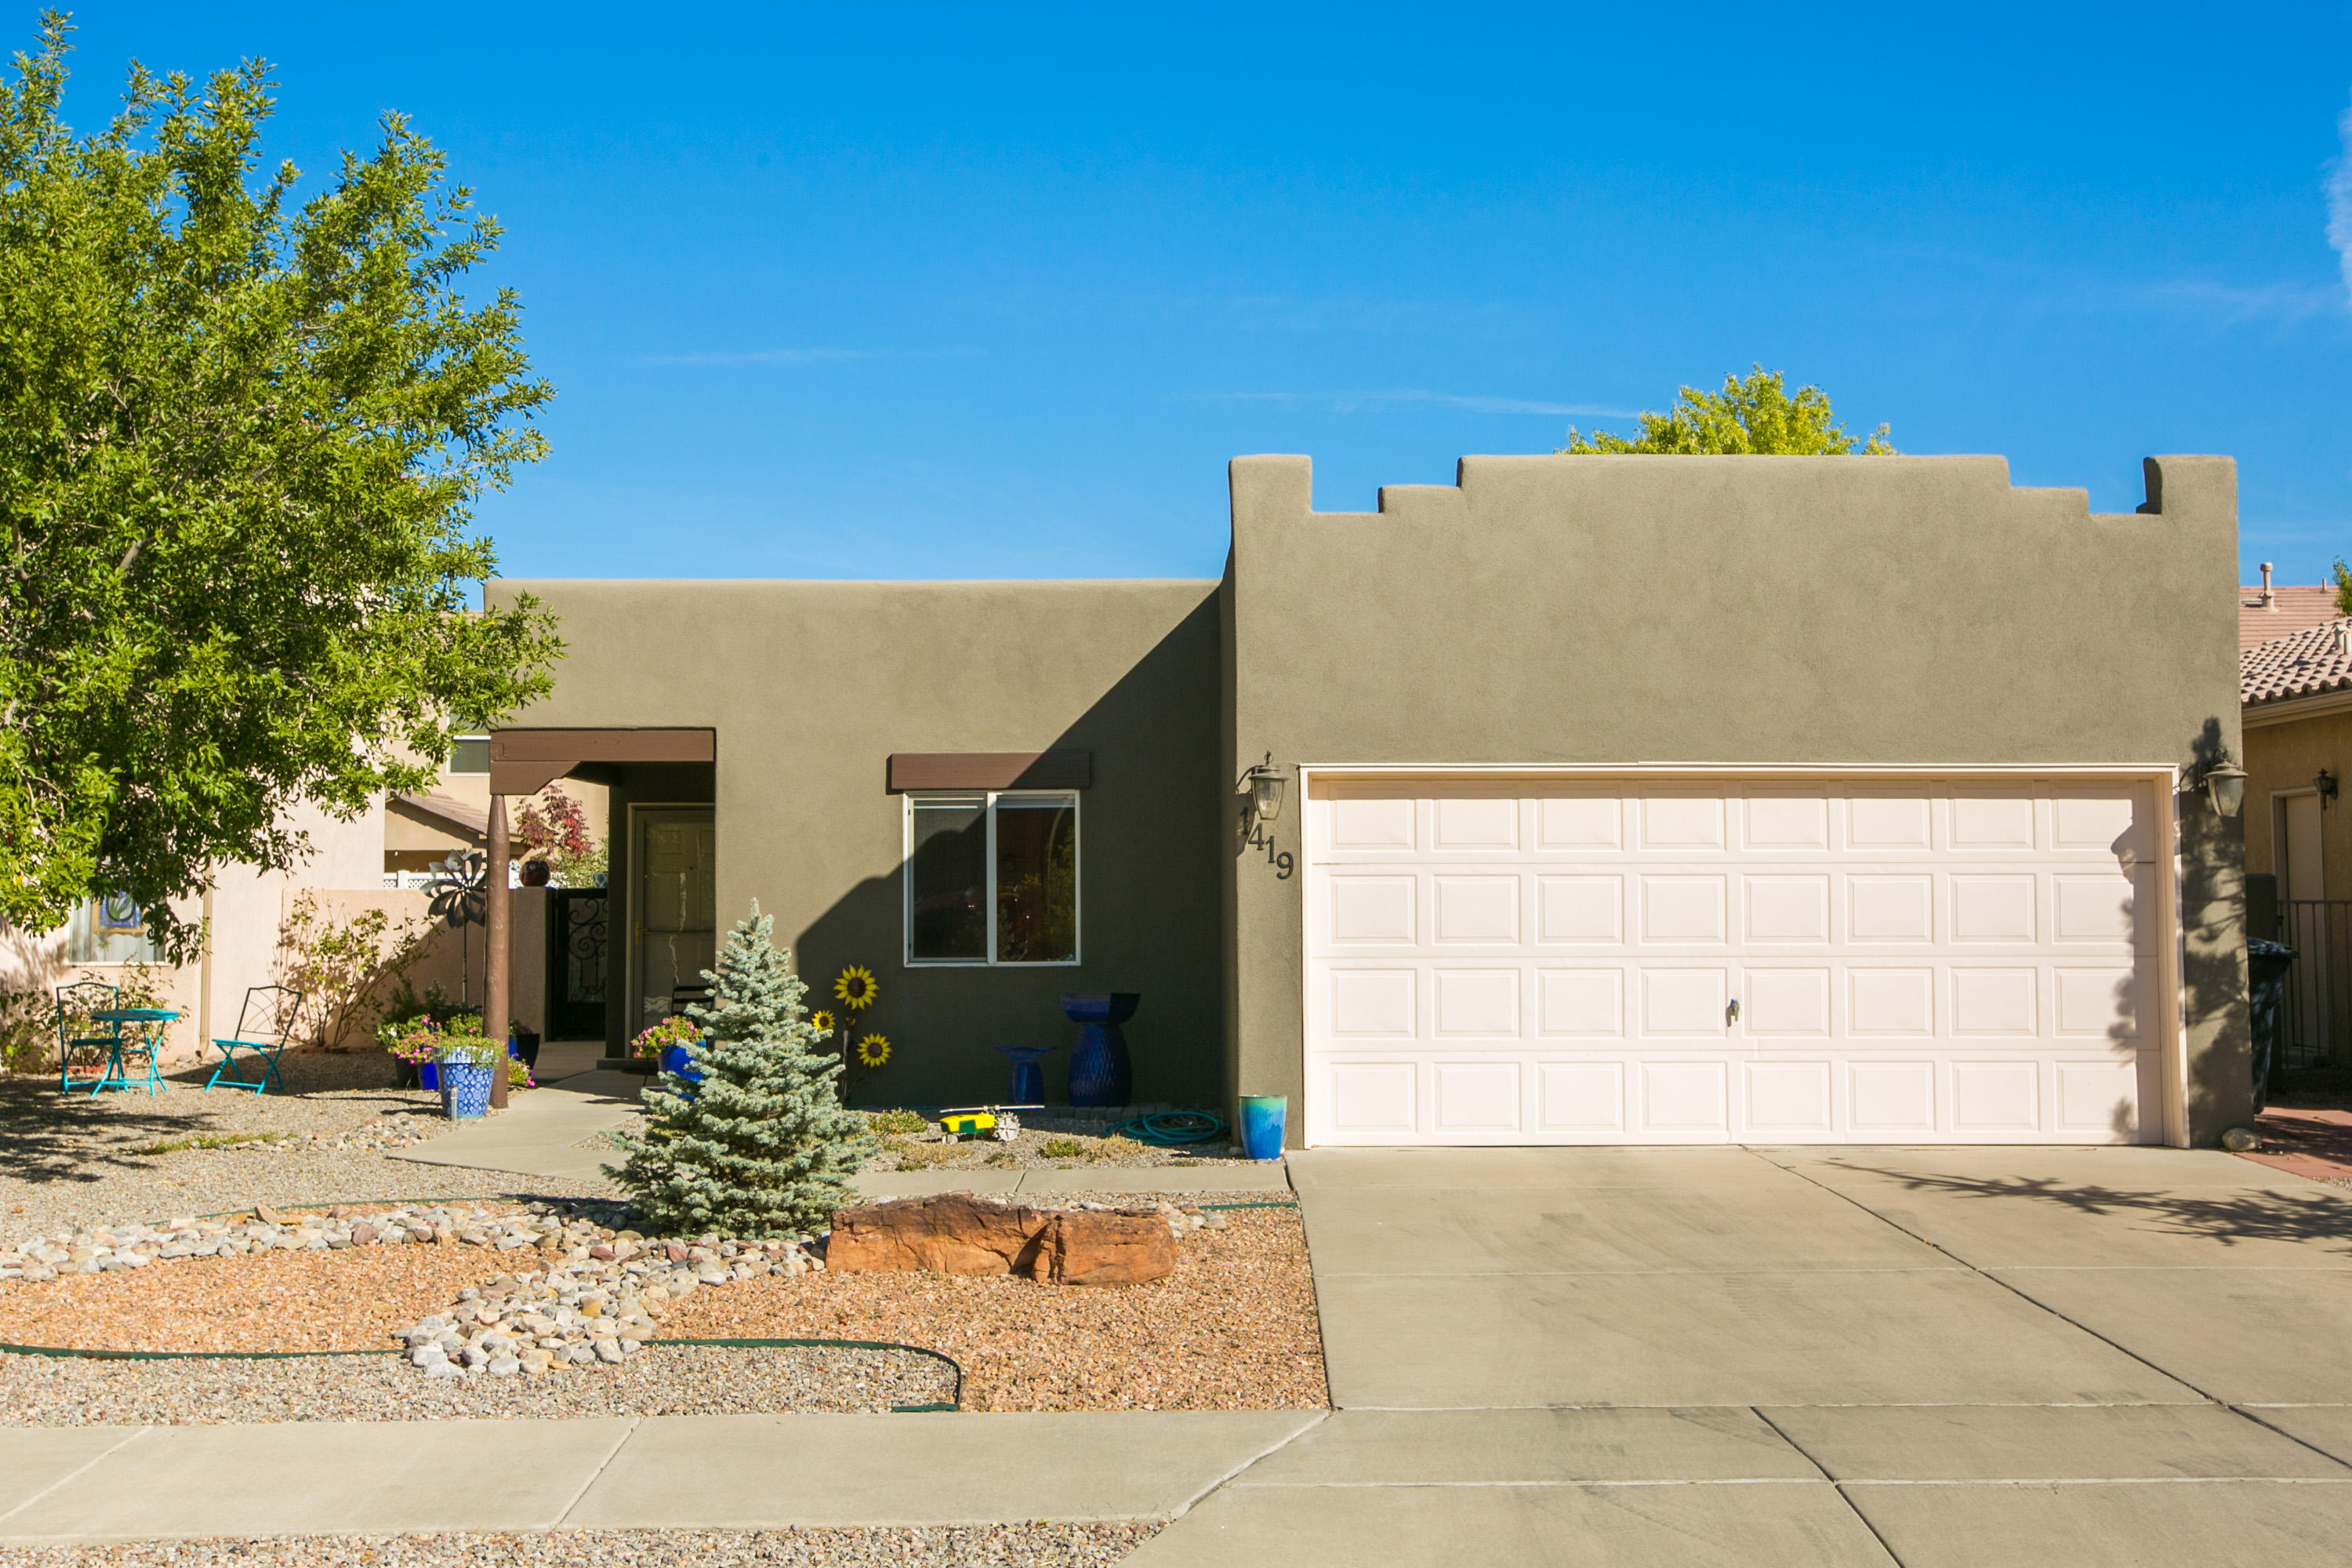 A Gorgeous updated 1-story home with REFRIGERATED Air in a beautiful community...with Rio Rancho Prices close to I-25 & Paseo Del Norte!  This home was updated with Luxury vinyl plank, new carpet (2018), water heater (2019) and a new roof and stucco in 2016! It also features double pane vinyl windows & eco-friendly landscaping with a drip system in front!Gorgeous open floor plan with all new fixtures  - Make your appointment today! This home will go fast!